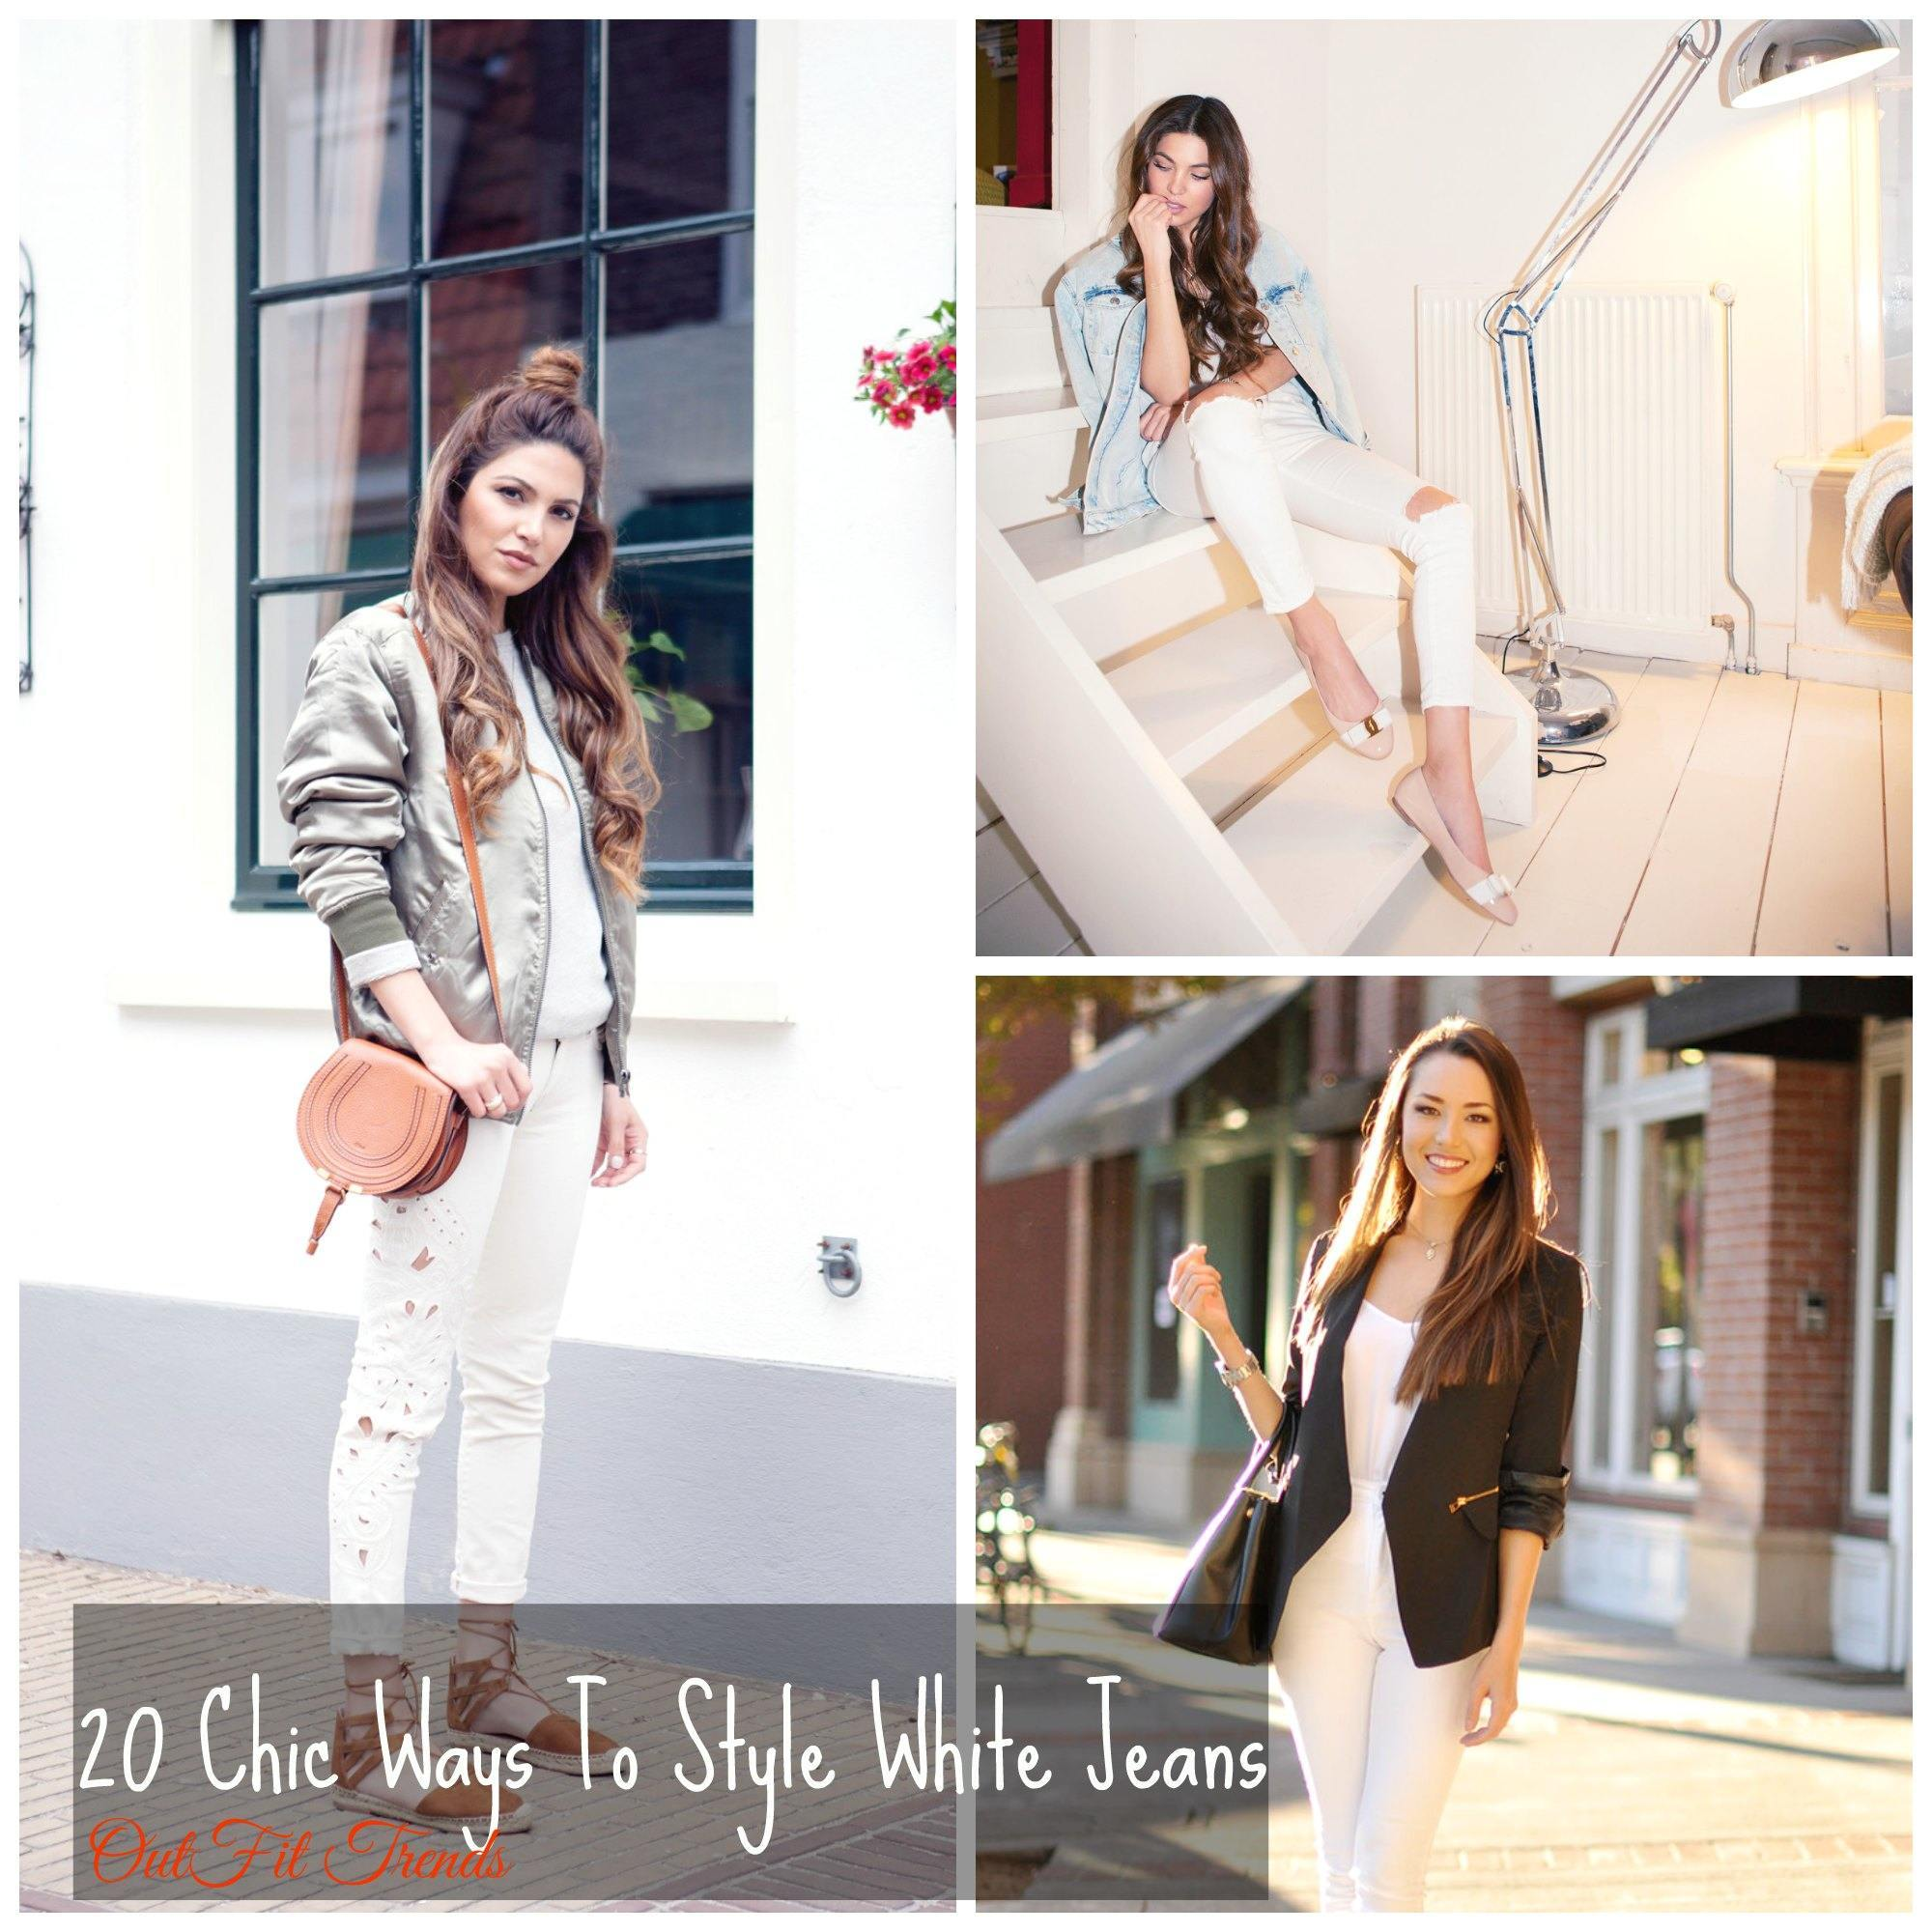 Fashionable ways to wear white denim